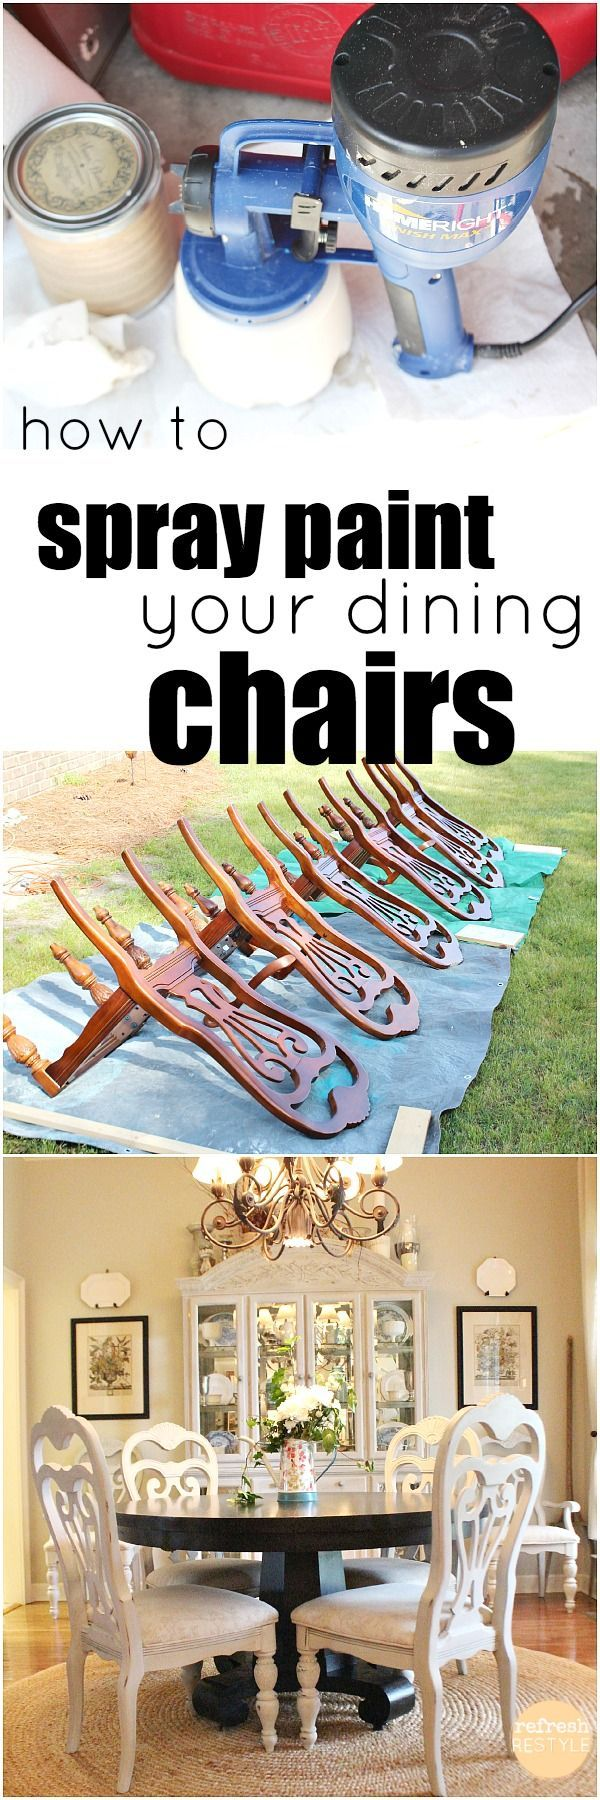 how to spray paint dining chairs | spray painting, sprays and